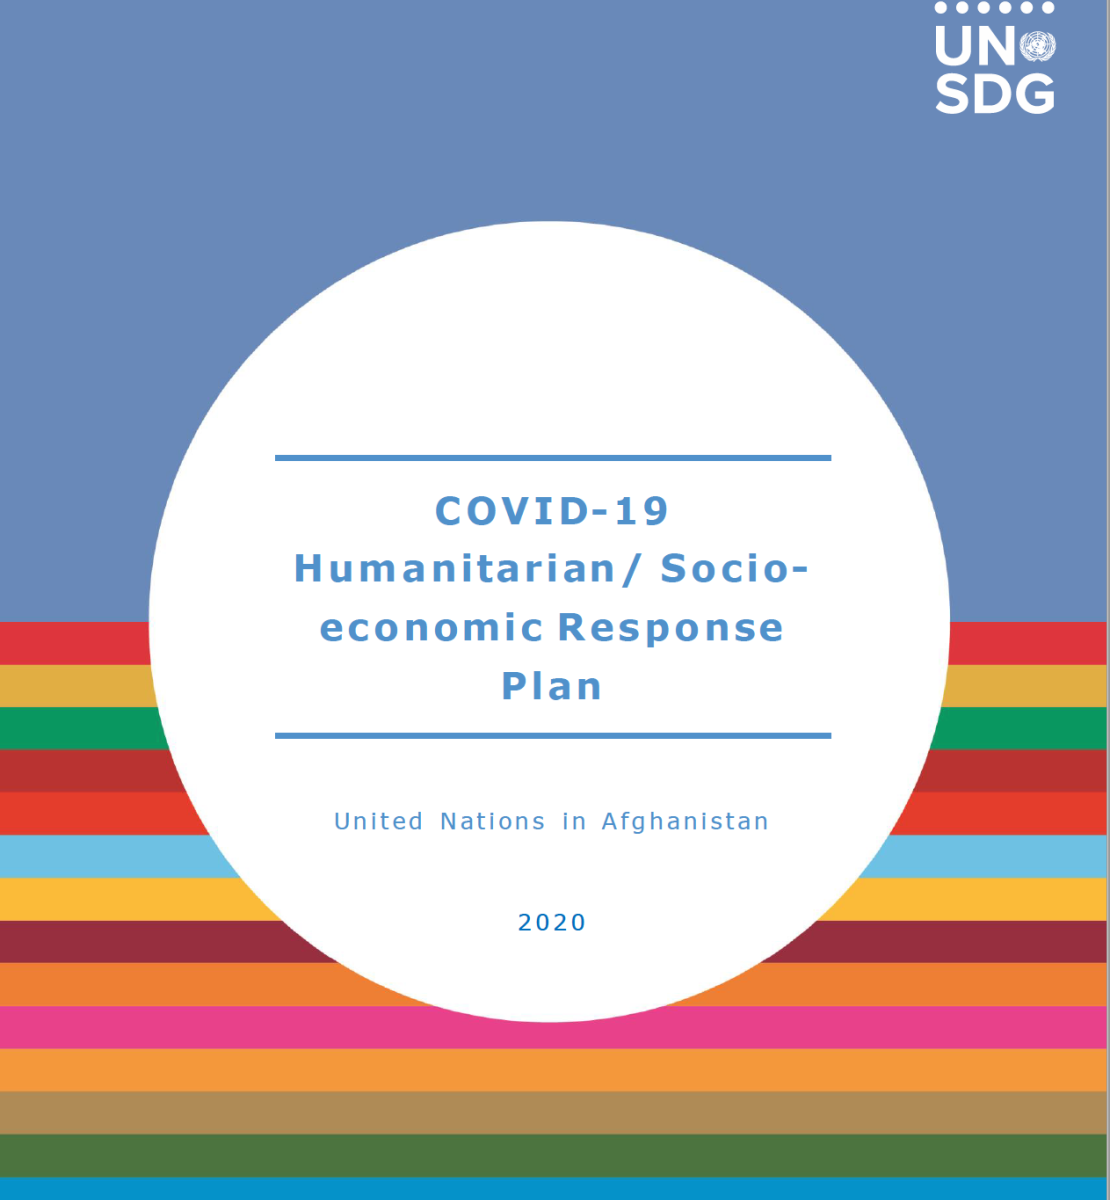 """Cover shows the title """"COVID-19 Humanitarian/ Socio-economic Response Plan for Afghanistan"""", over a white circle and blue/colorful bars background"""